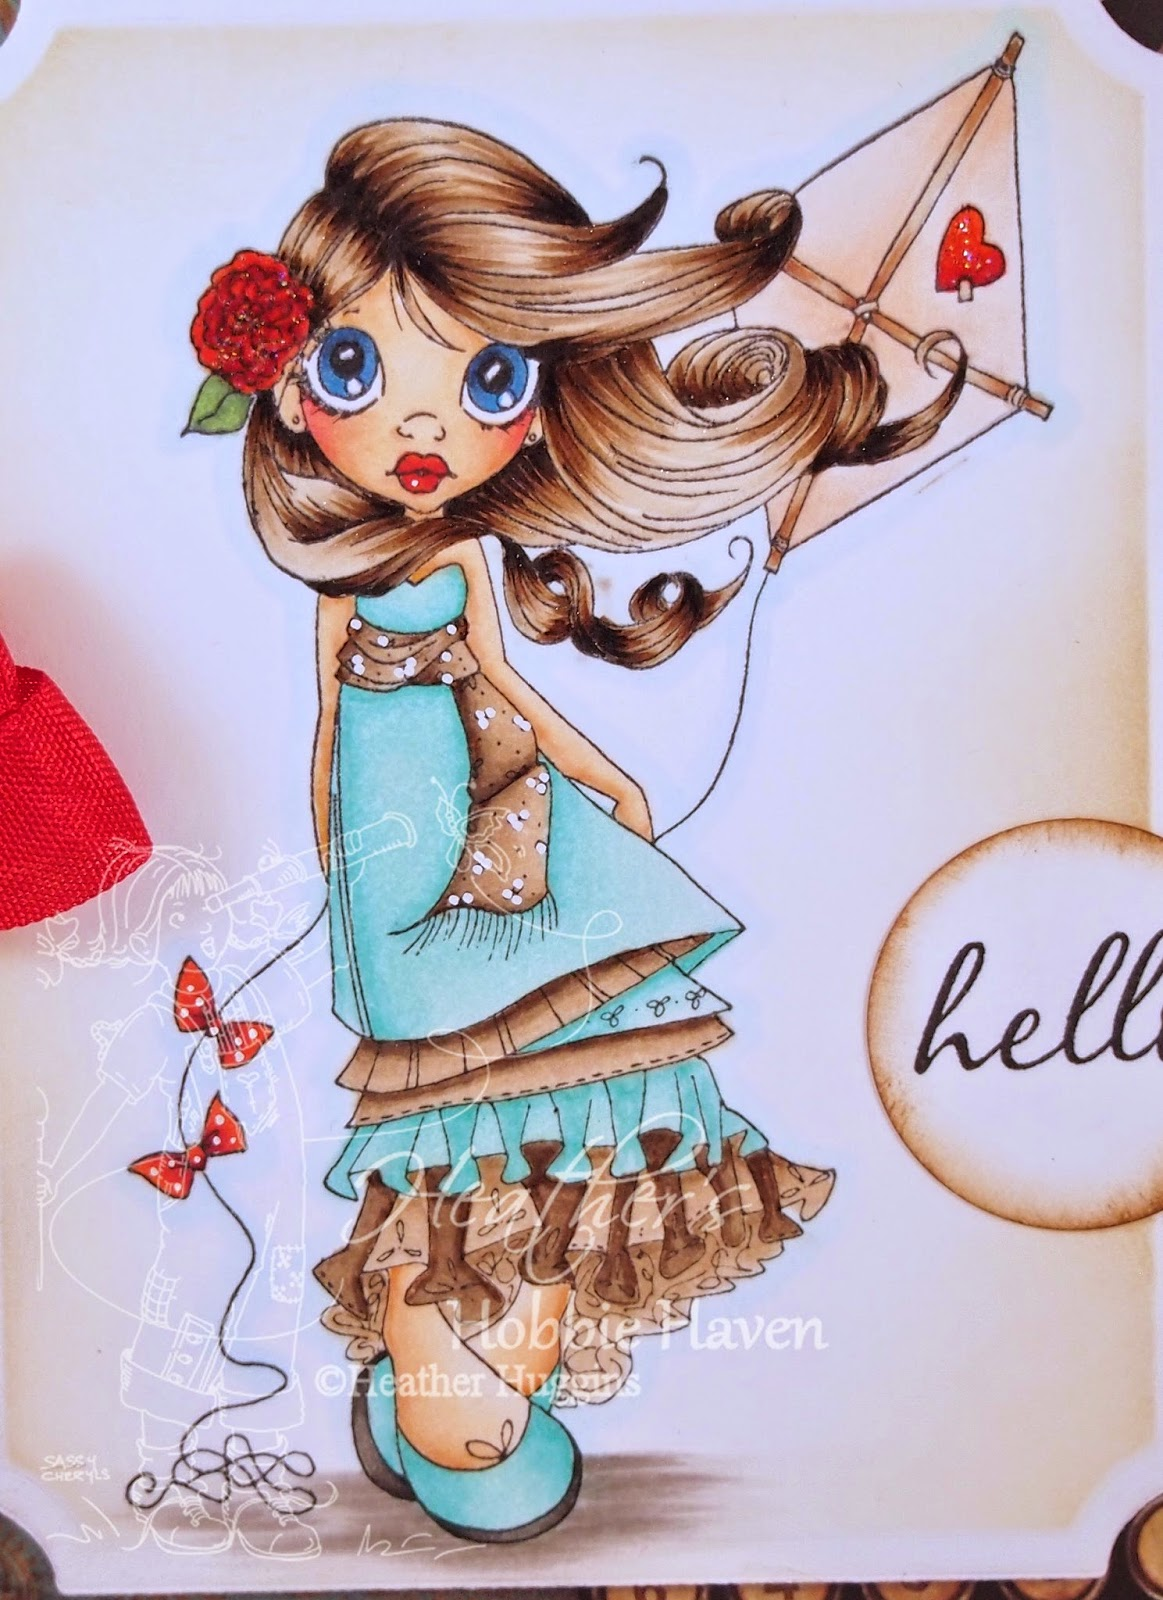 Heather's Hobbie Haven - Windy Day Card Kit